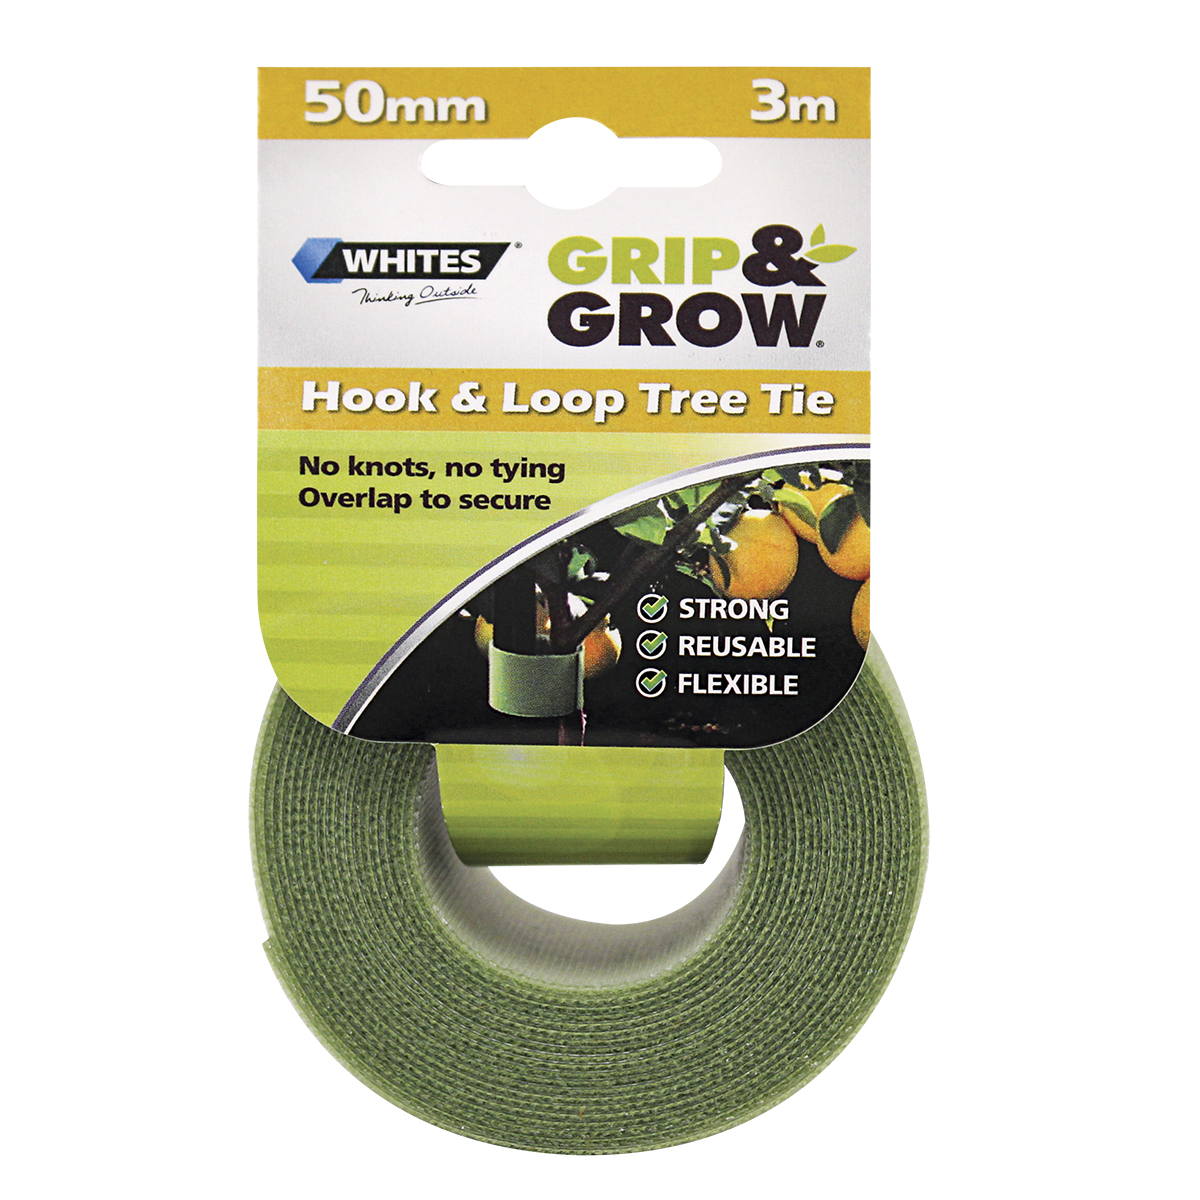 18724 - Grip & Grow Hook & Loop Plant Tie